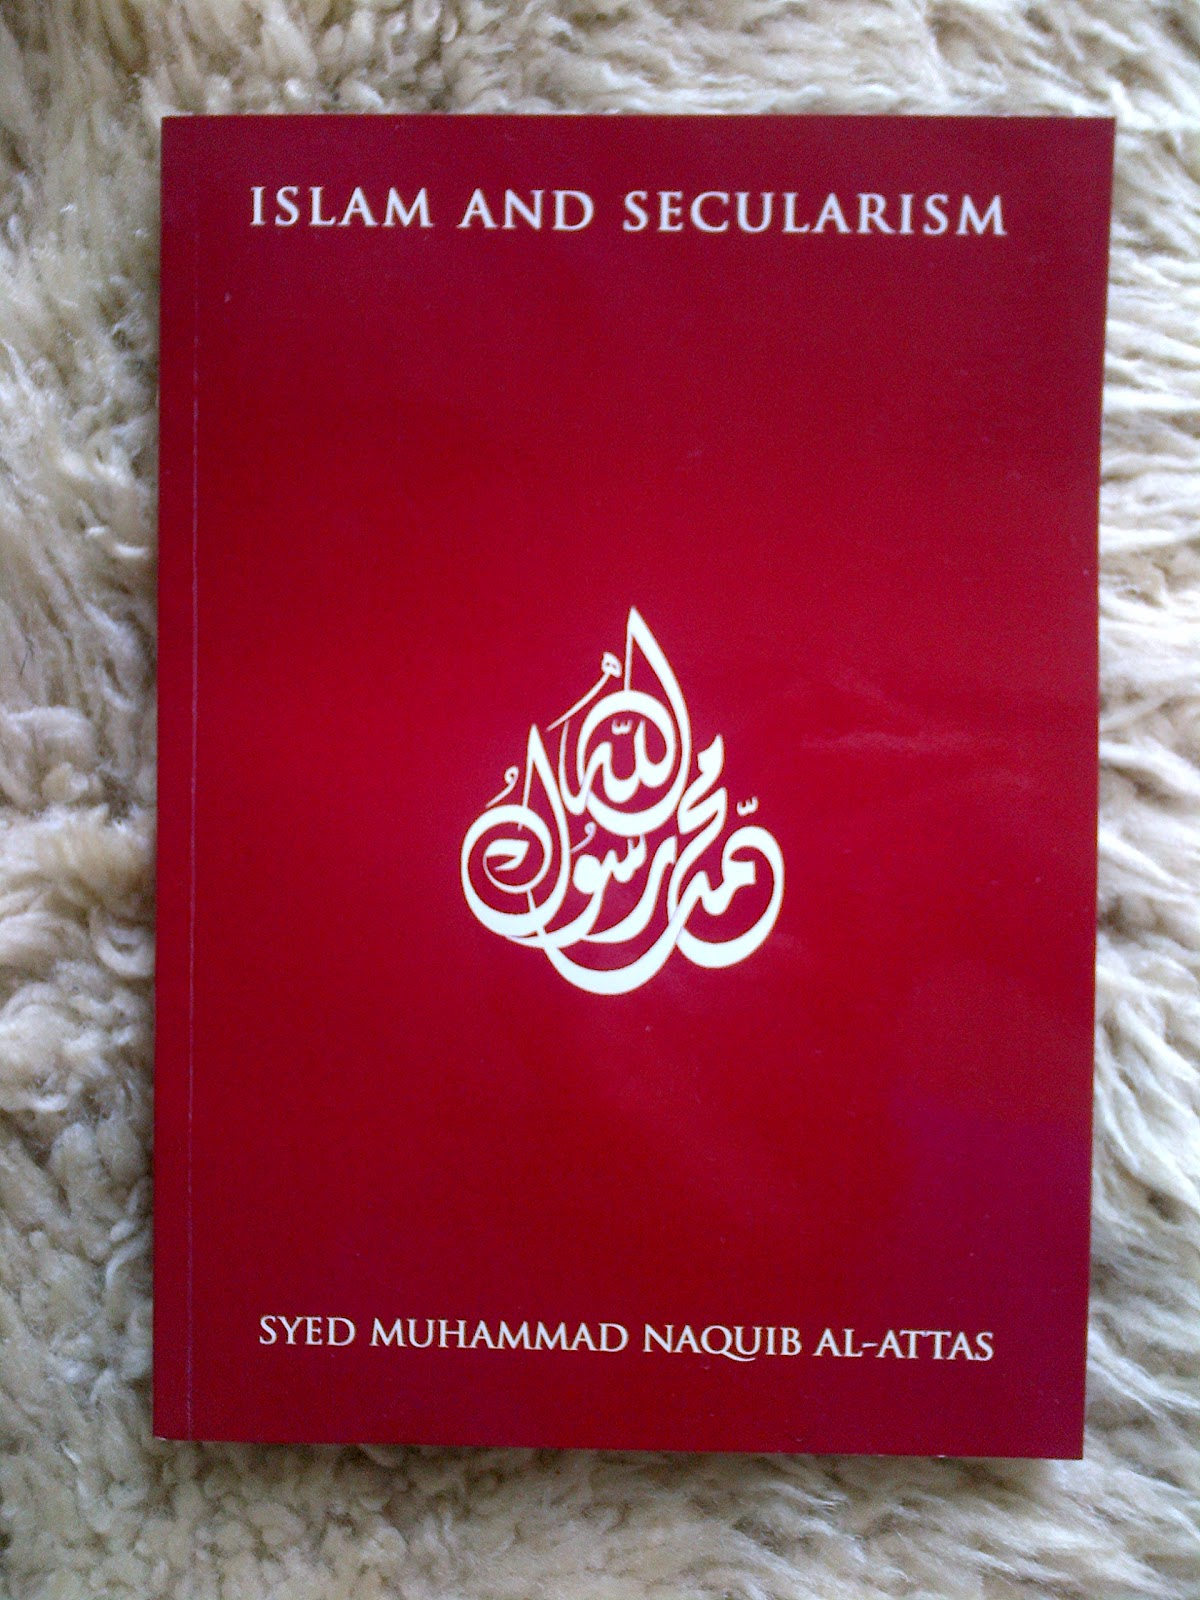 Islam and Secularism